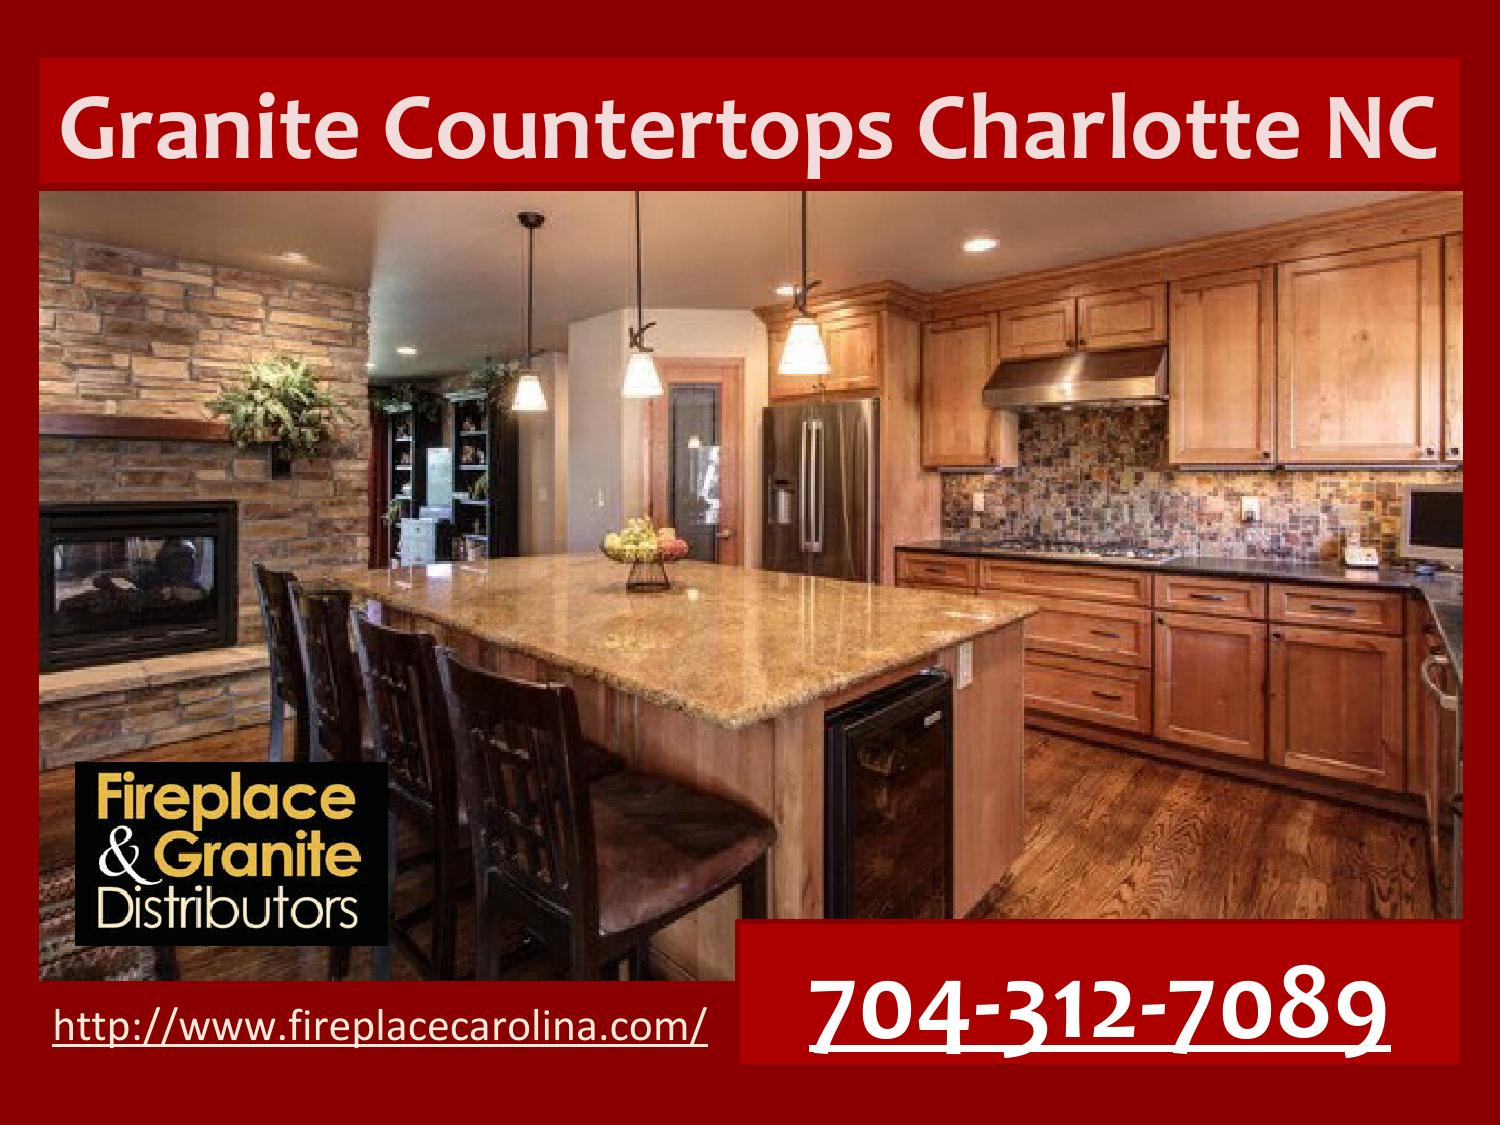 Granite Countertops Charlotte Nc 704 312 7089 By Maya Grauel Issuu